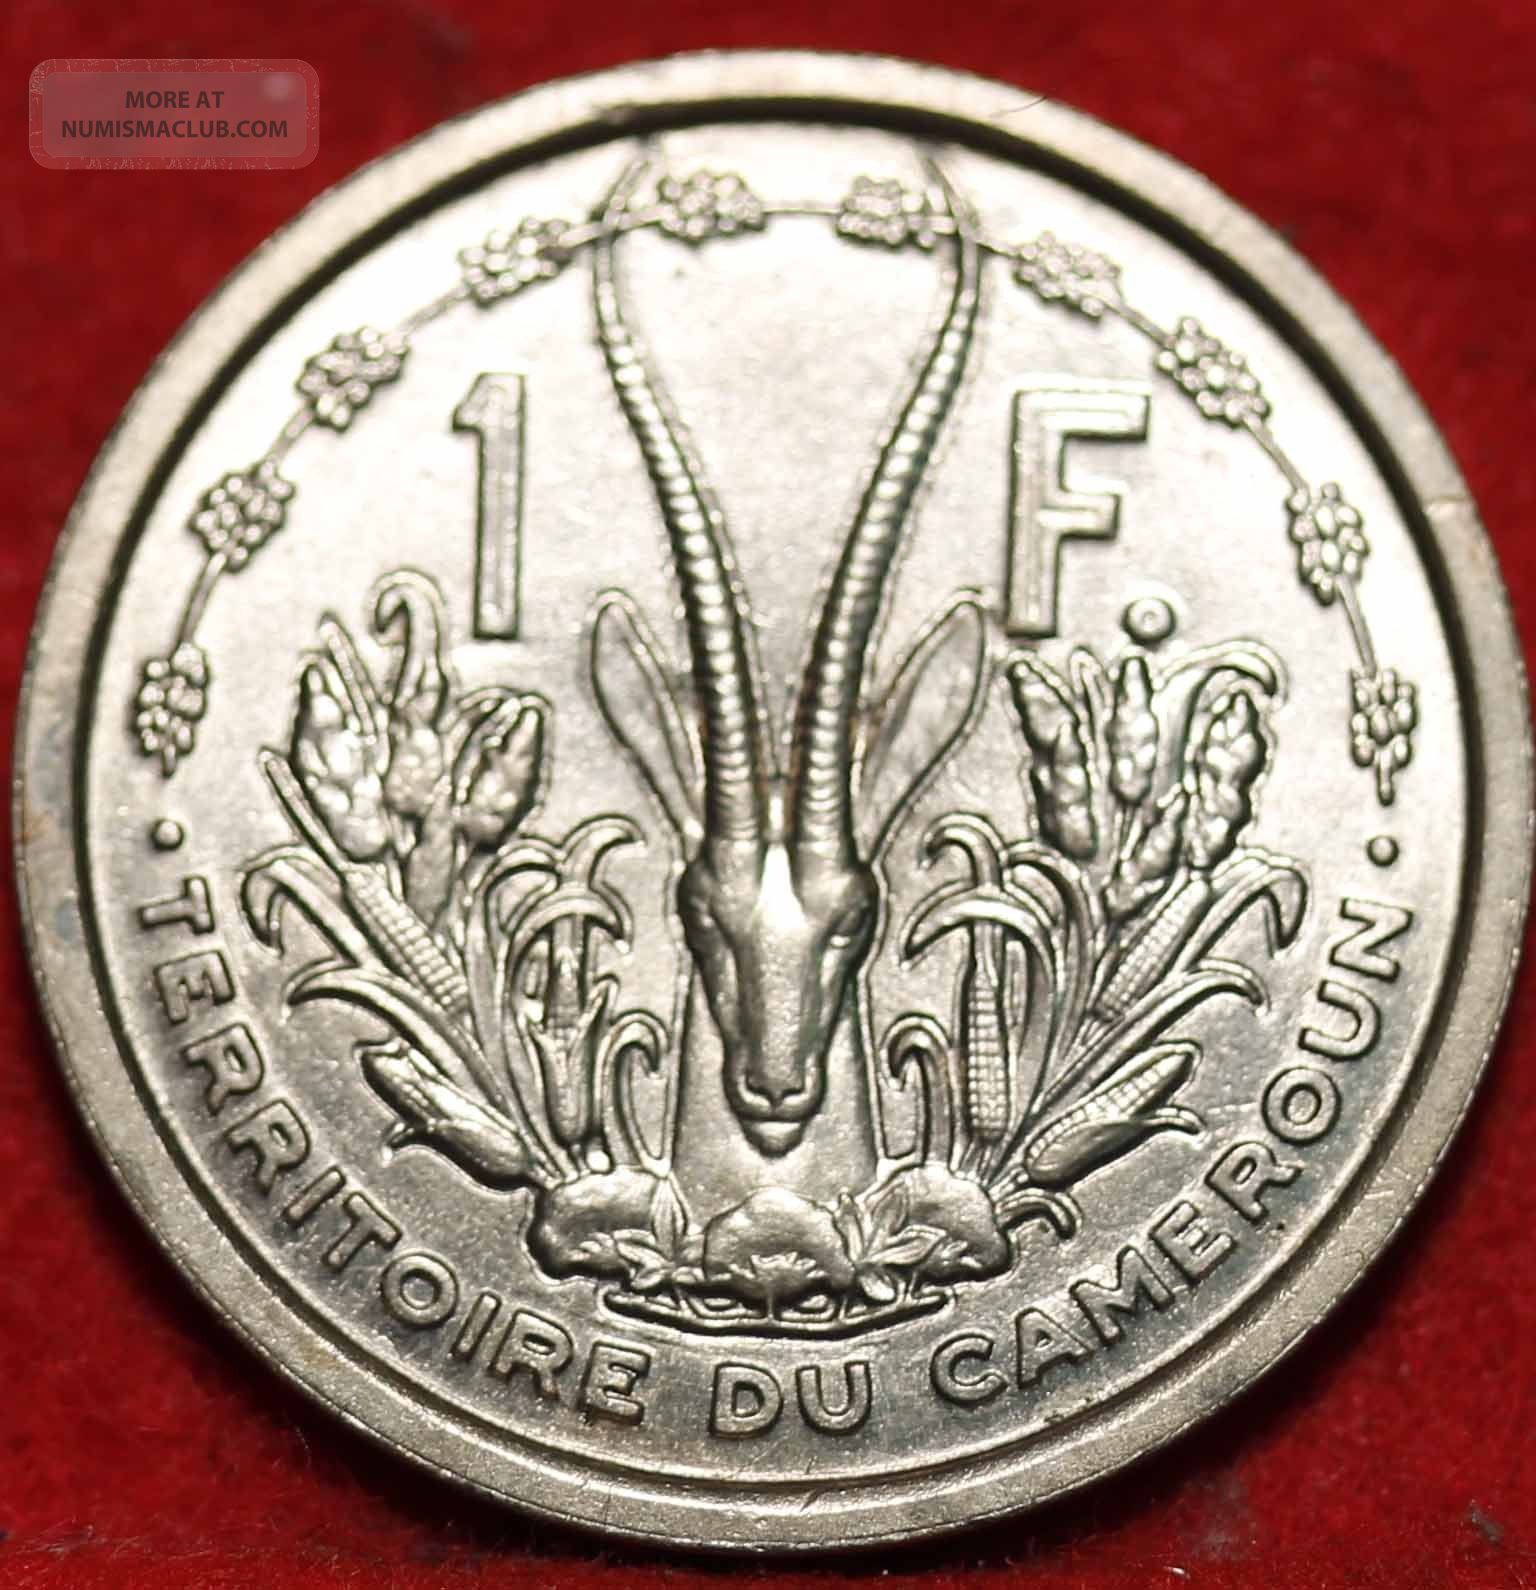 Uncirculated 1948 French Cameroun 1 Franc Foreign Coin S H